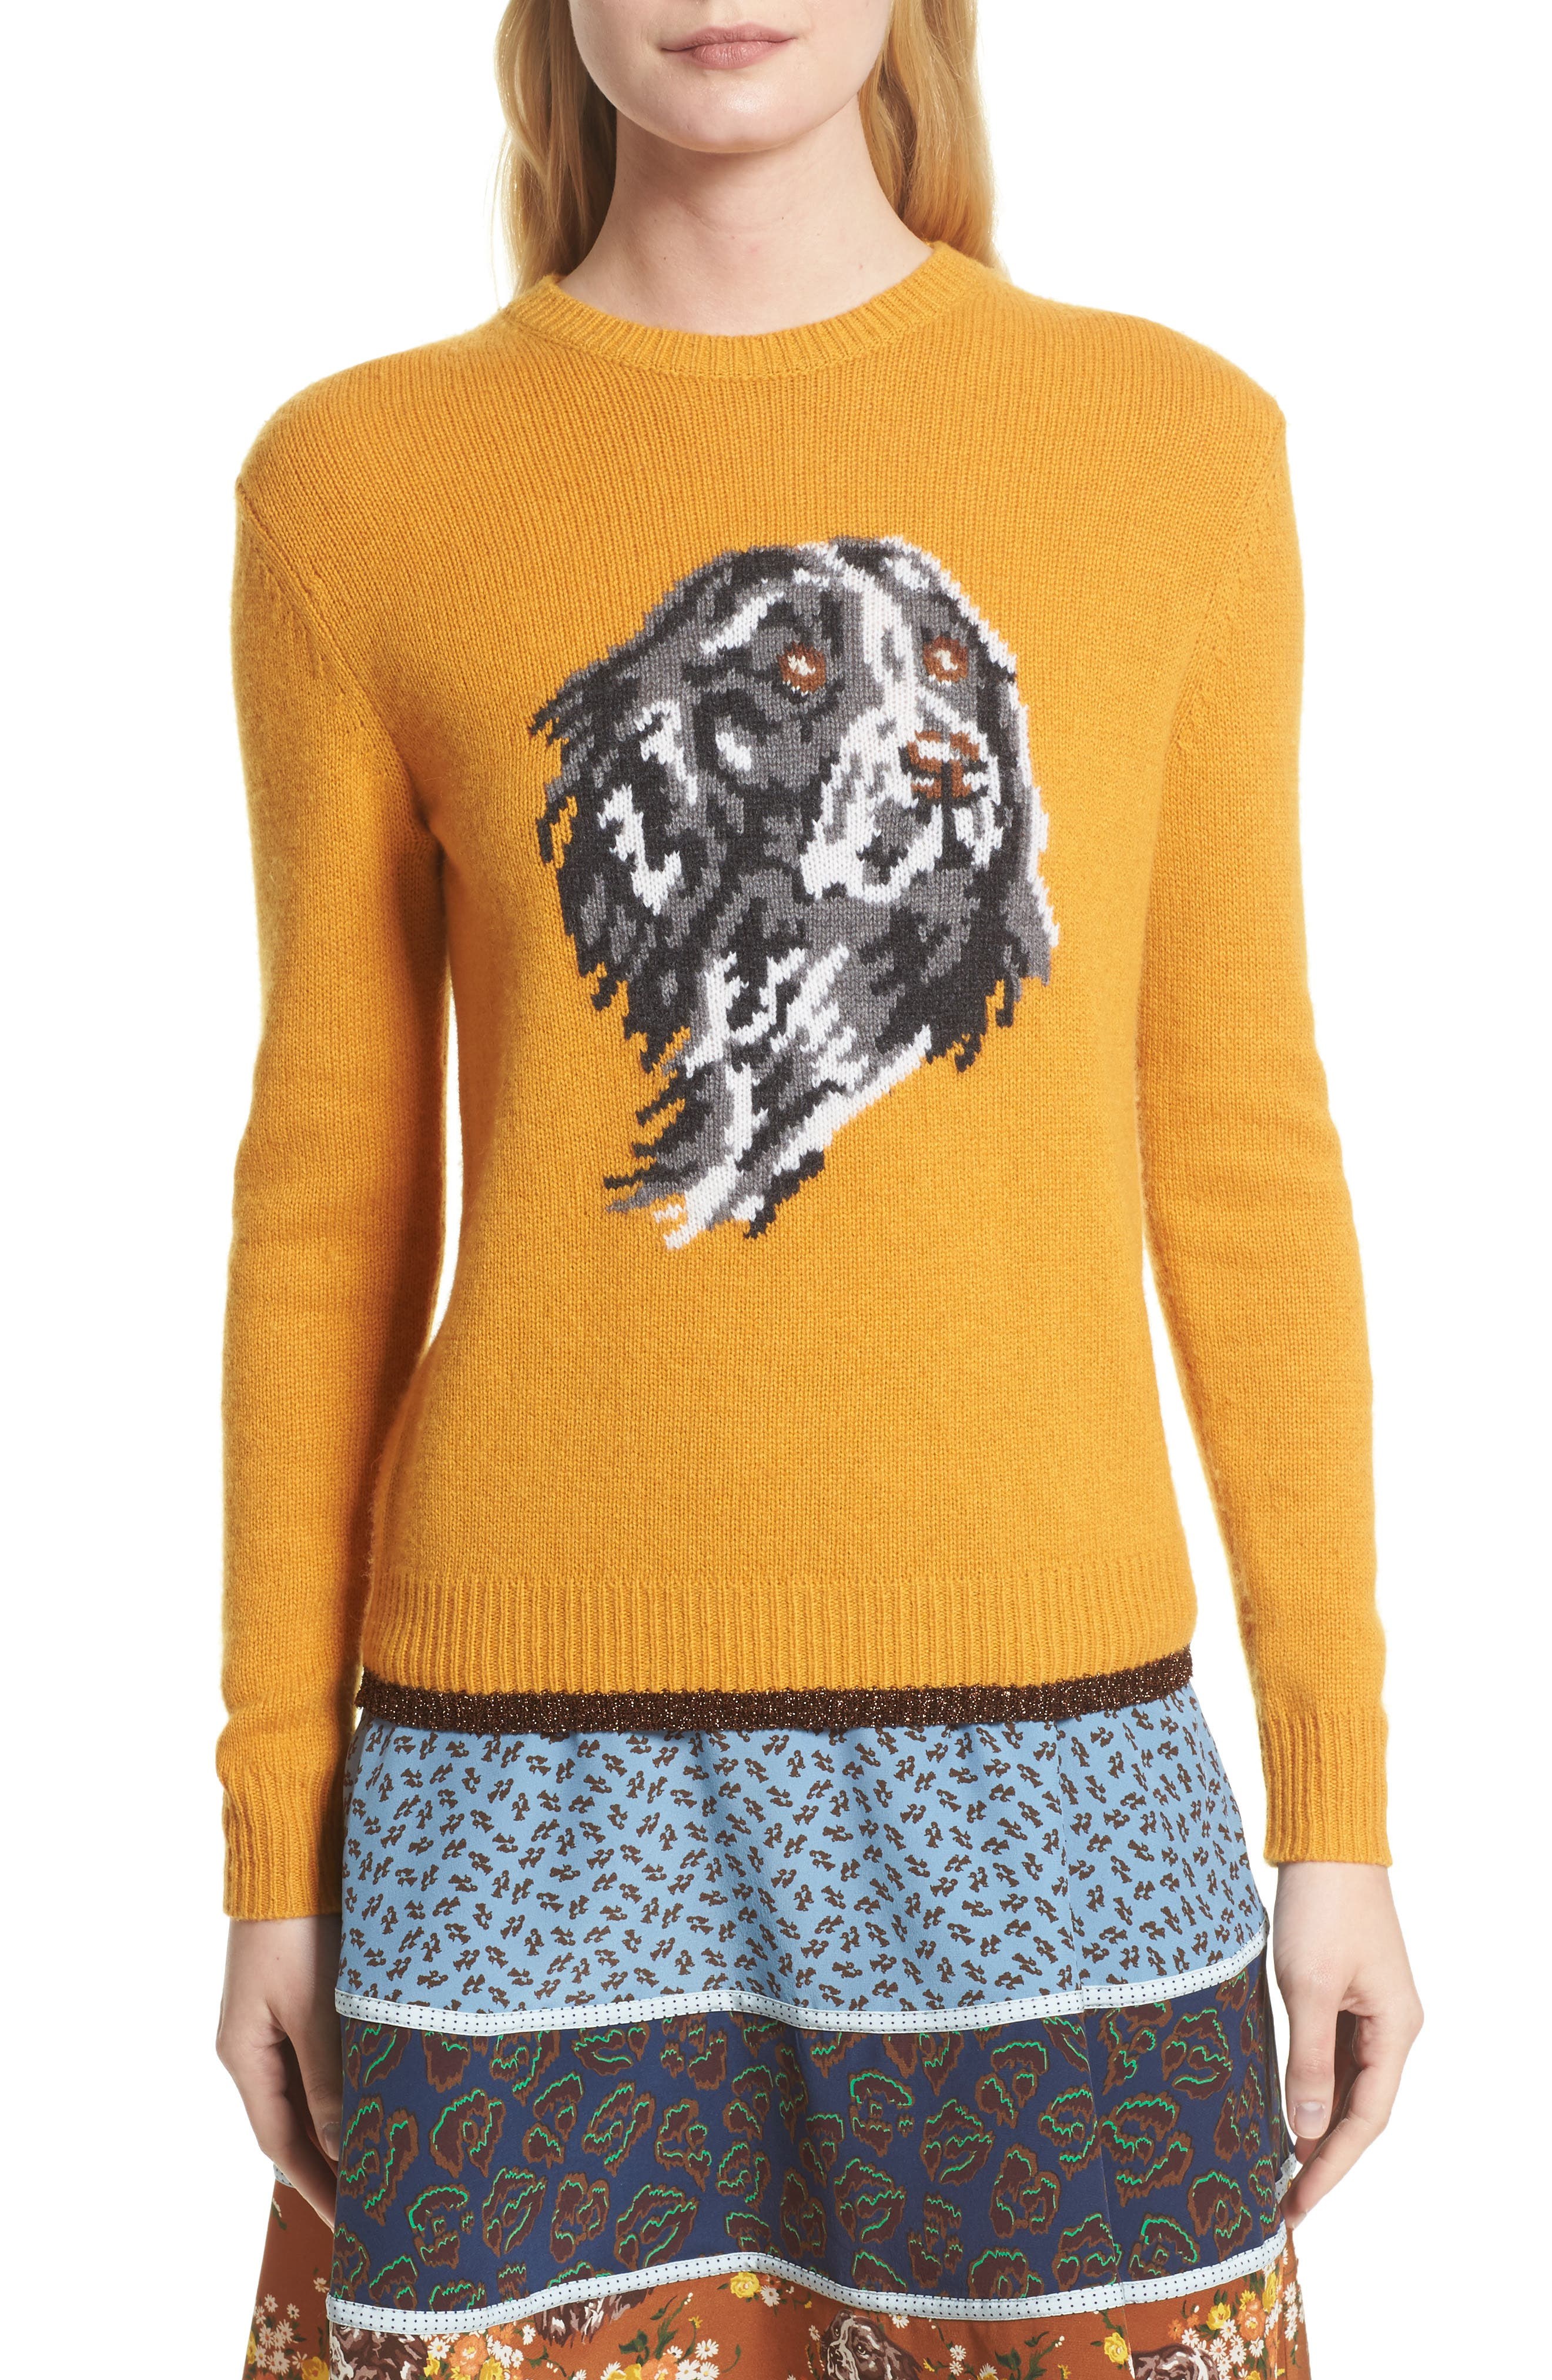 COACH 1941 Intarsia Dog Cashmere Sweater